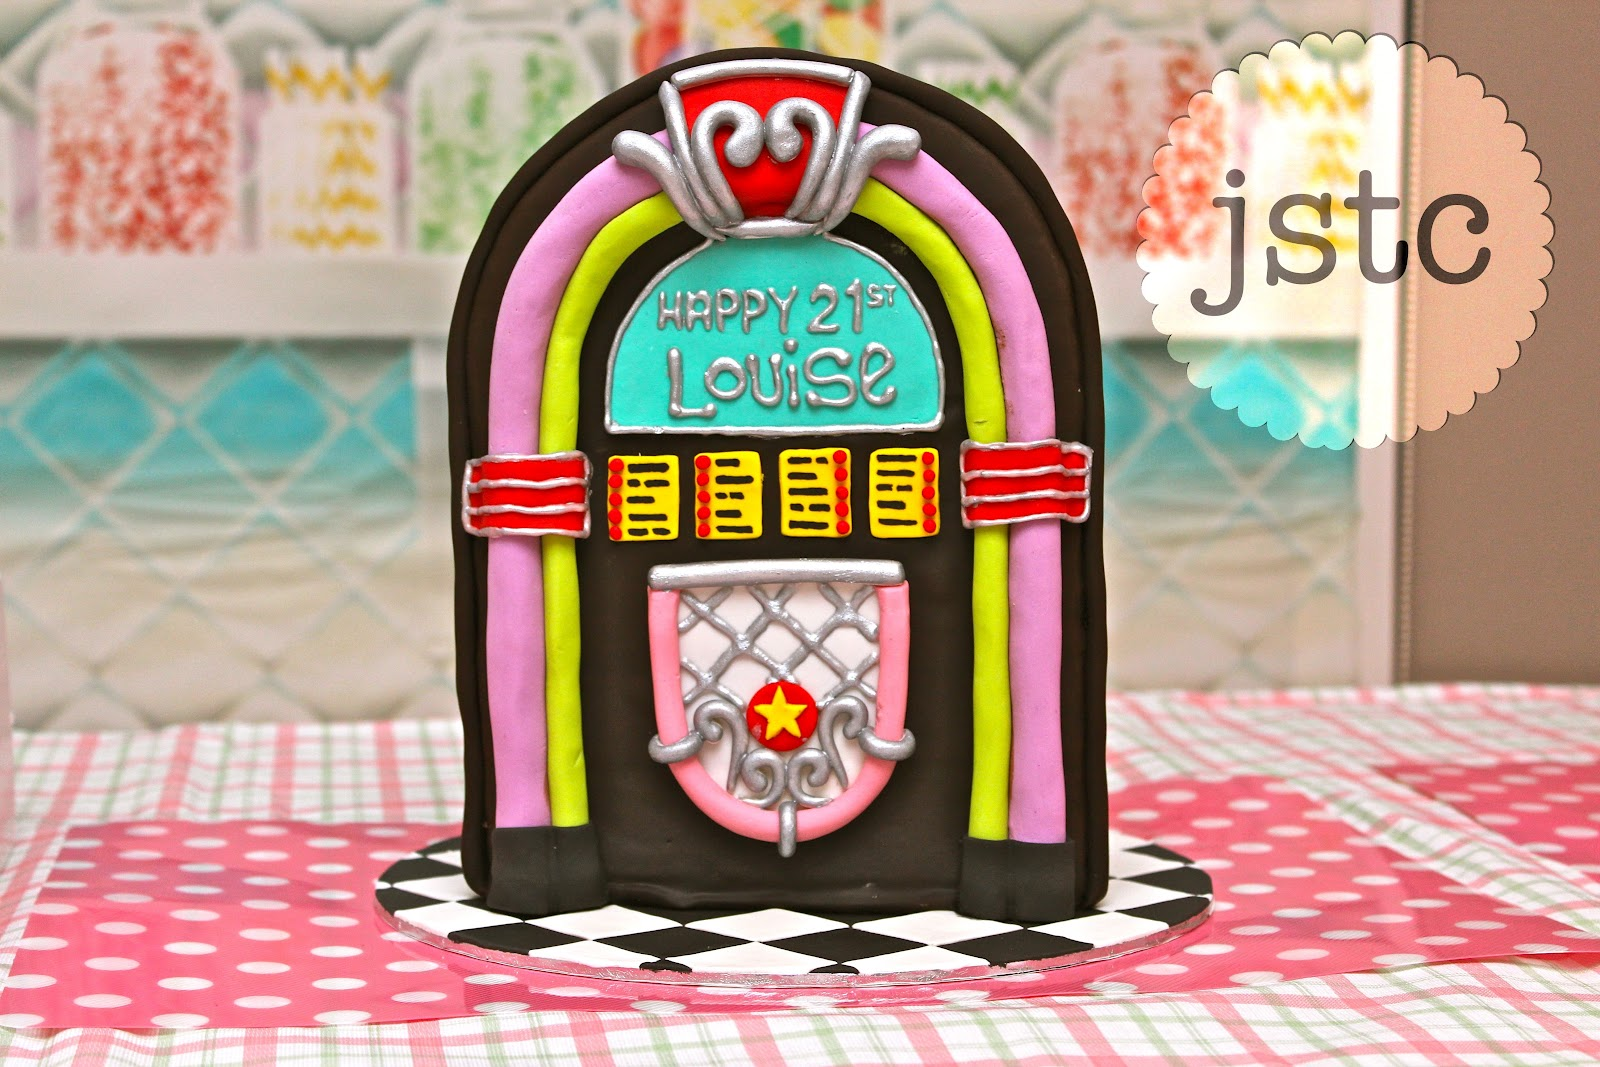 Pictures of 1950s Jukebox http://jemmassweettreatcatering.blogspot.com/2012/05/jukebox-cake-1950s-themed-treats.html